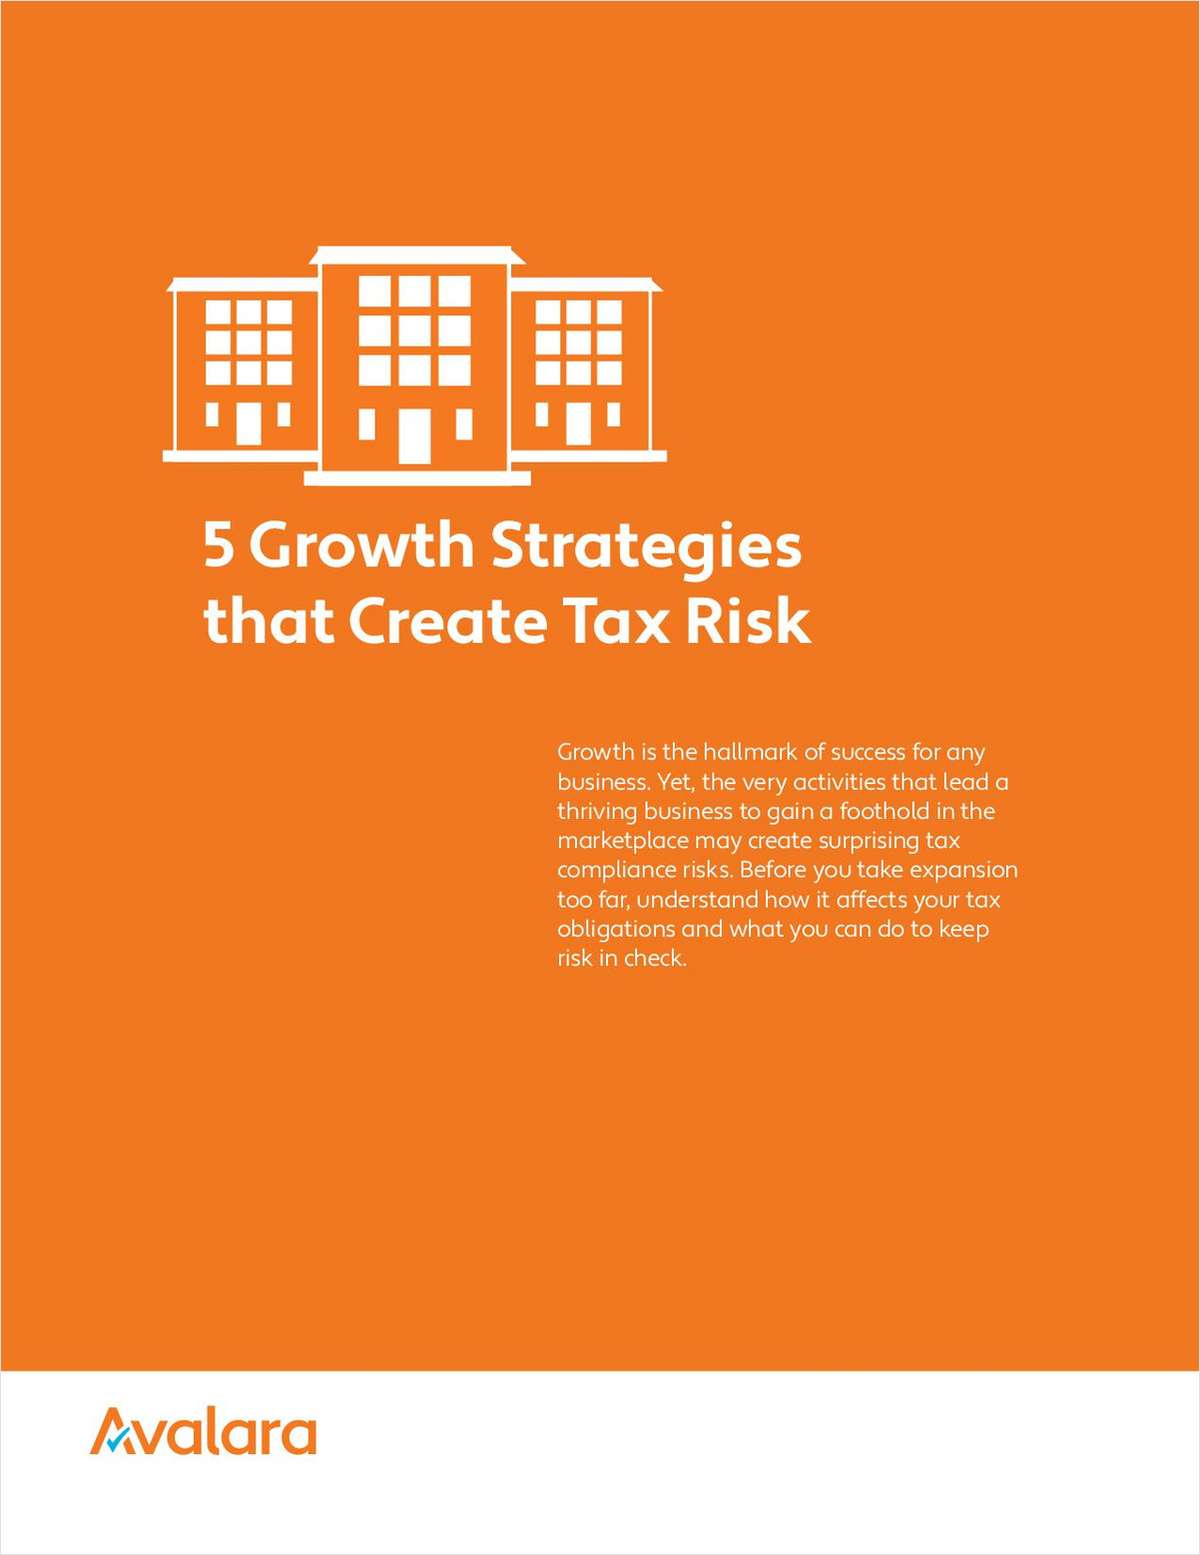 5 Growth Strategies that Create Tax Risk